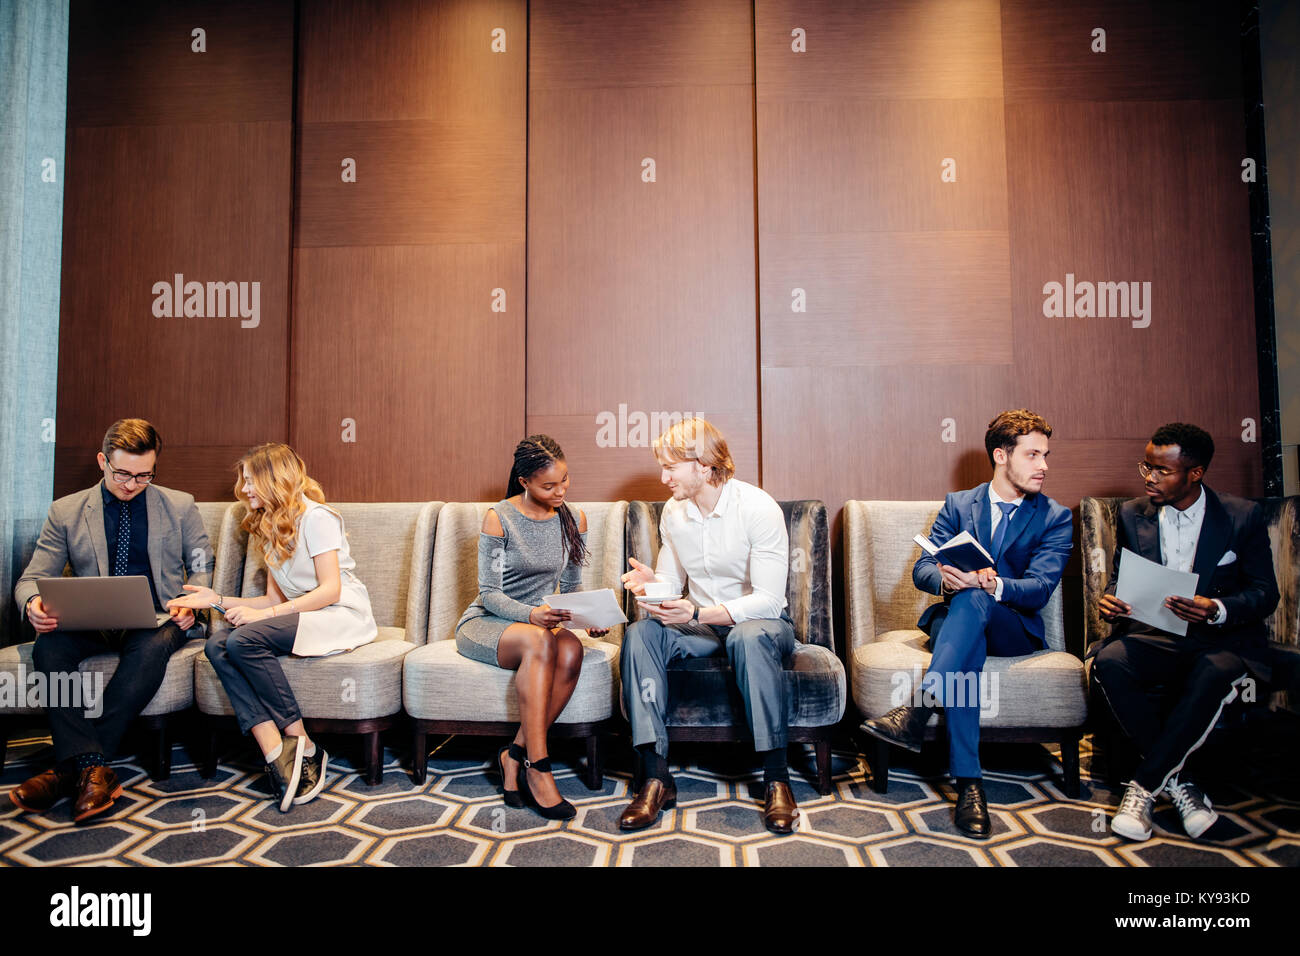 Business people waiting for job interview, talking - Stock Image